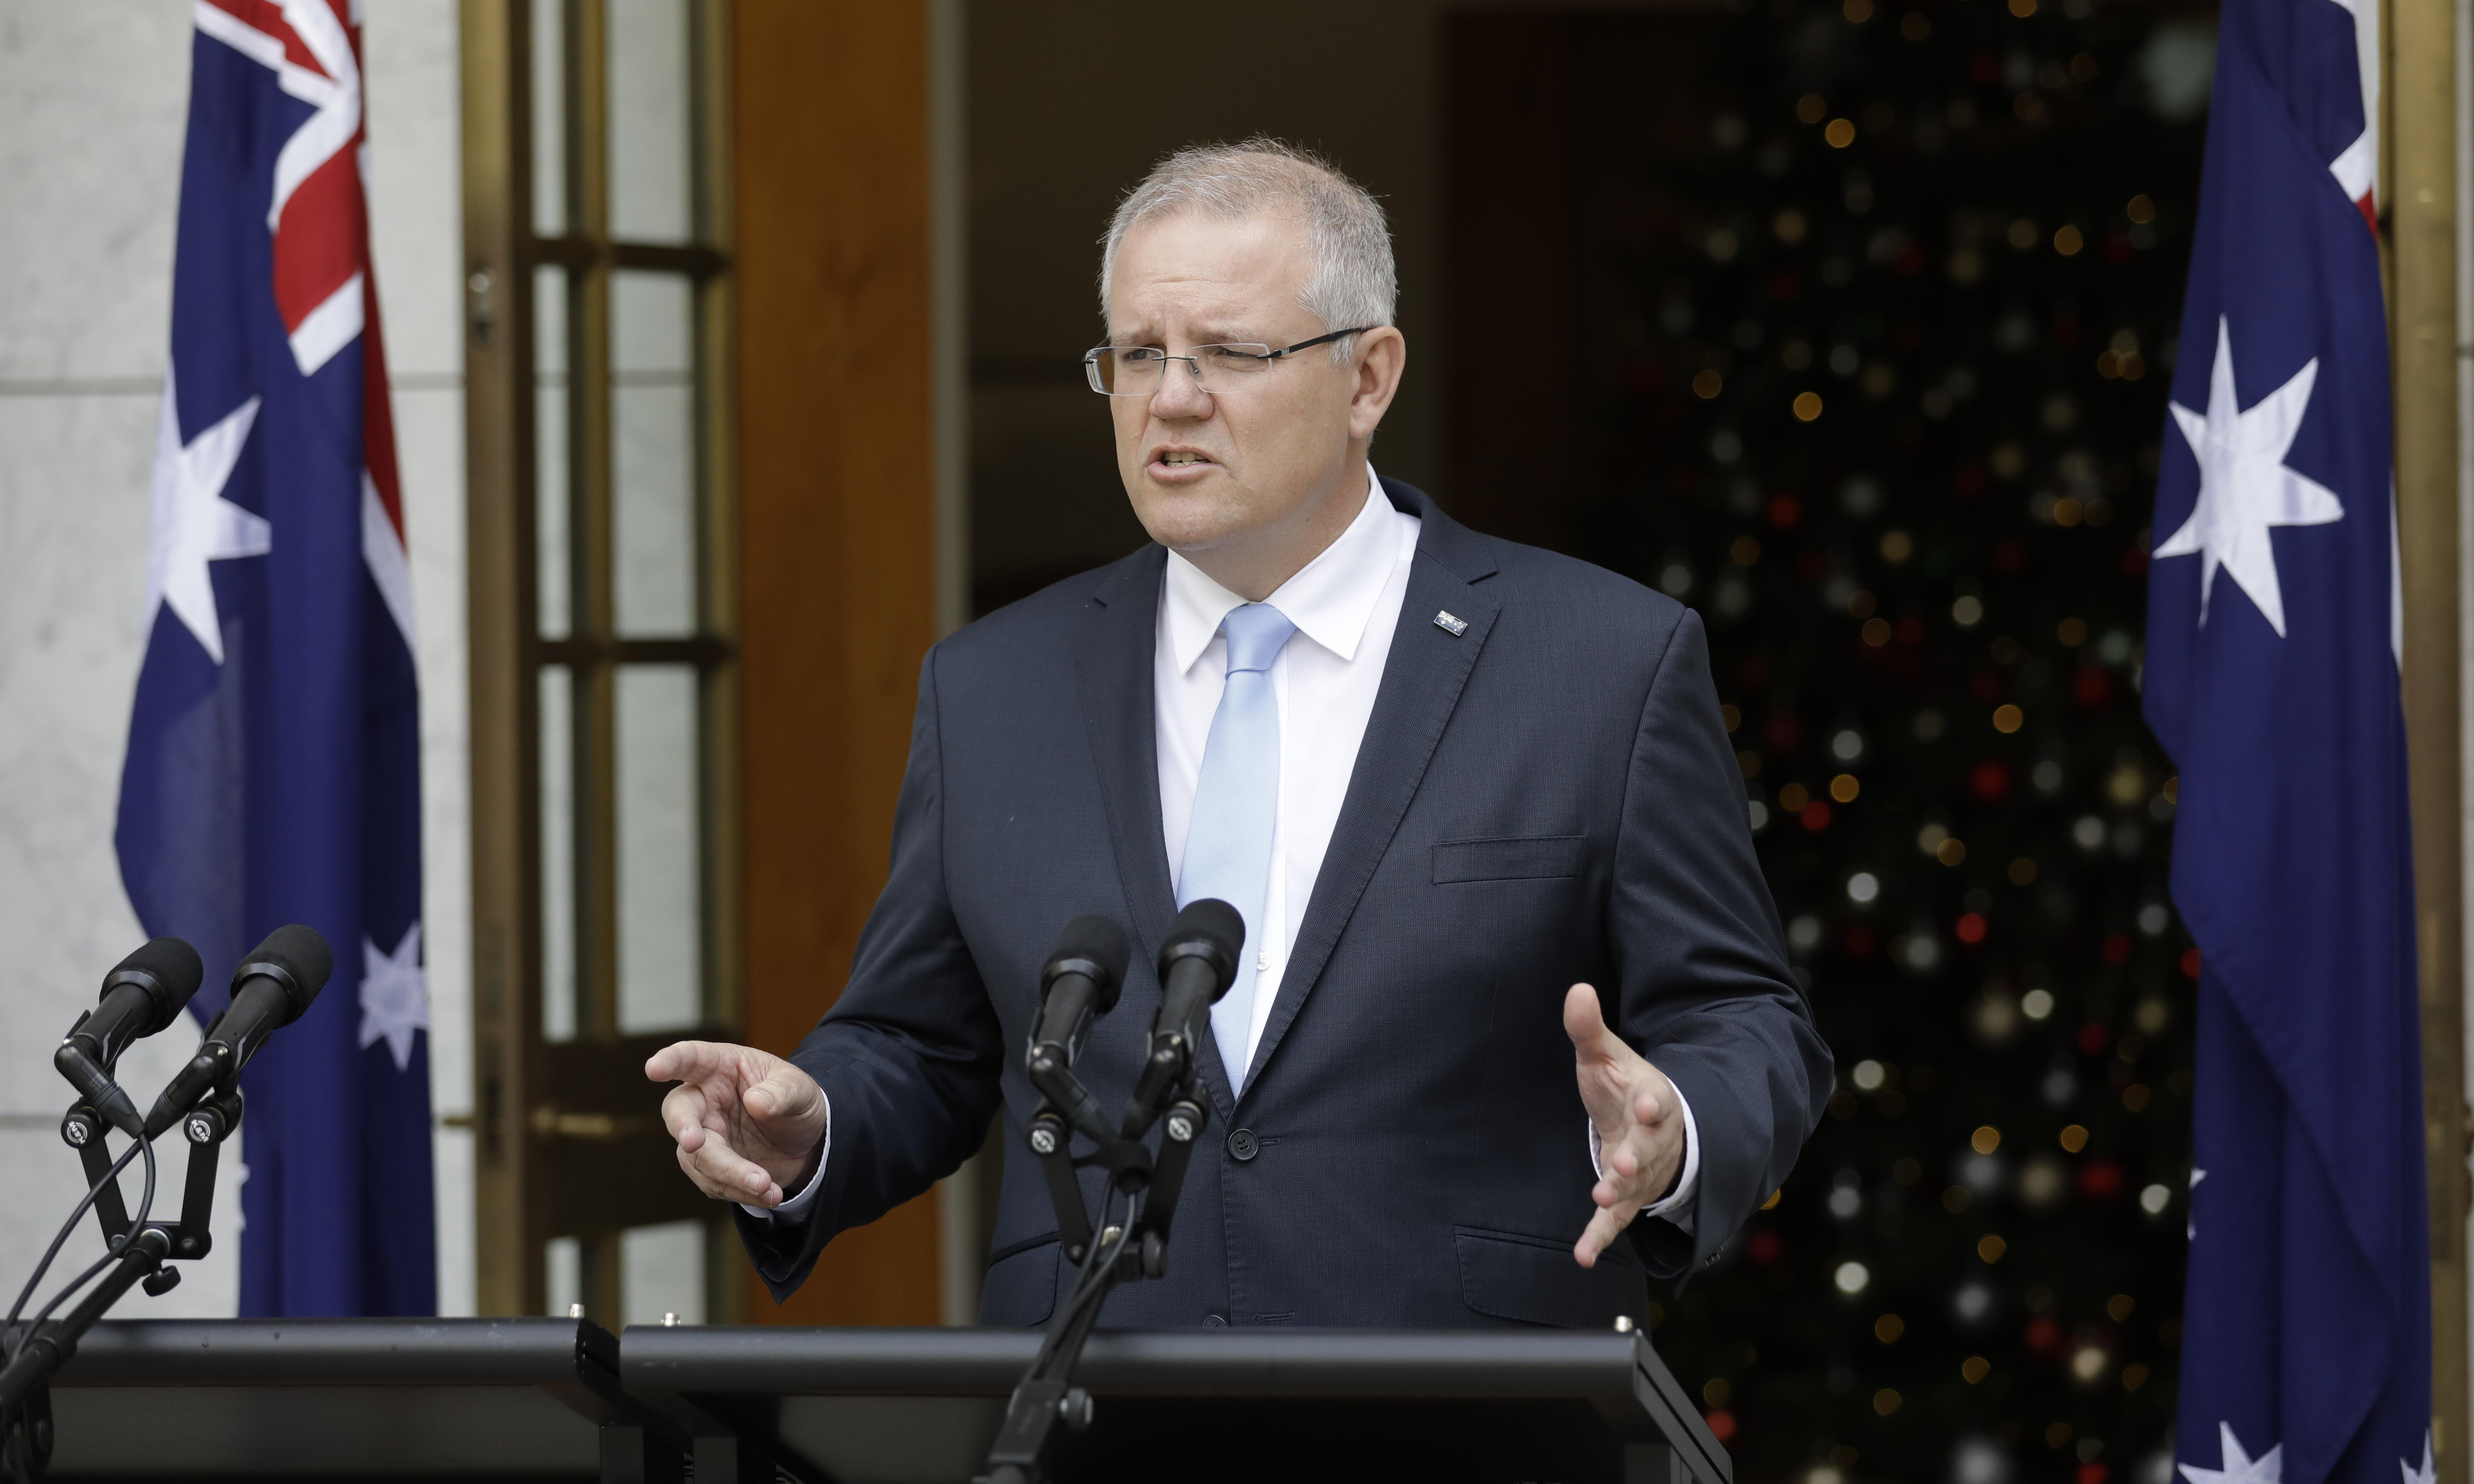 Arab countries discuss 'Australia situation' after recognition of West Jerusalem